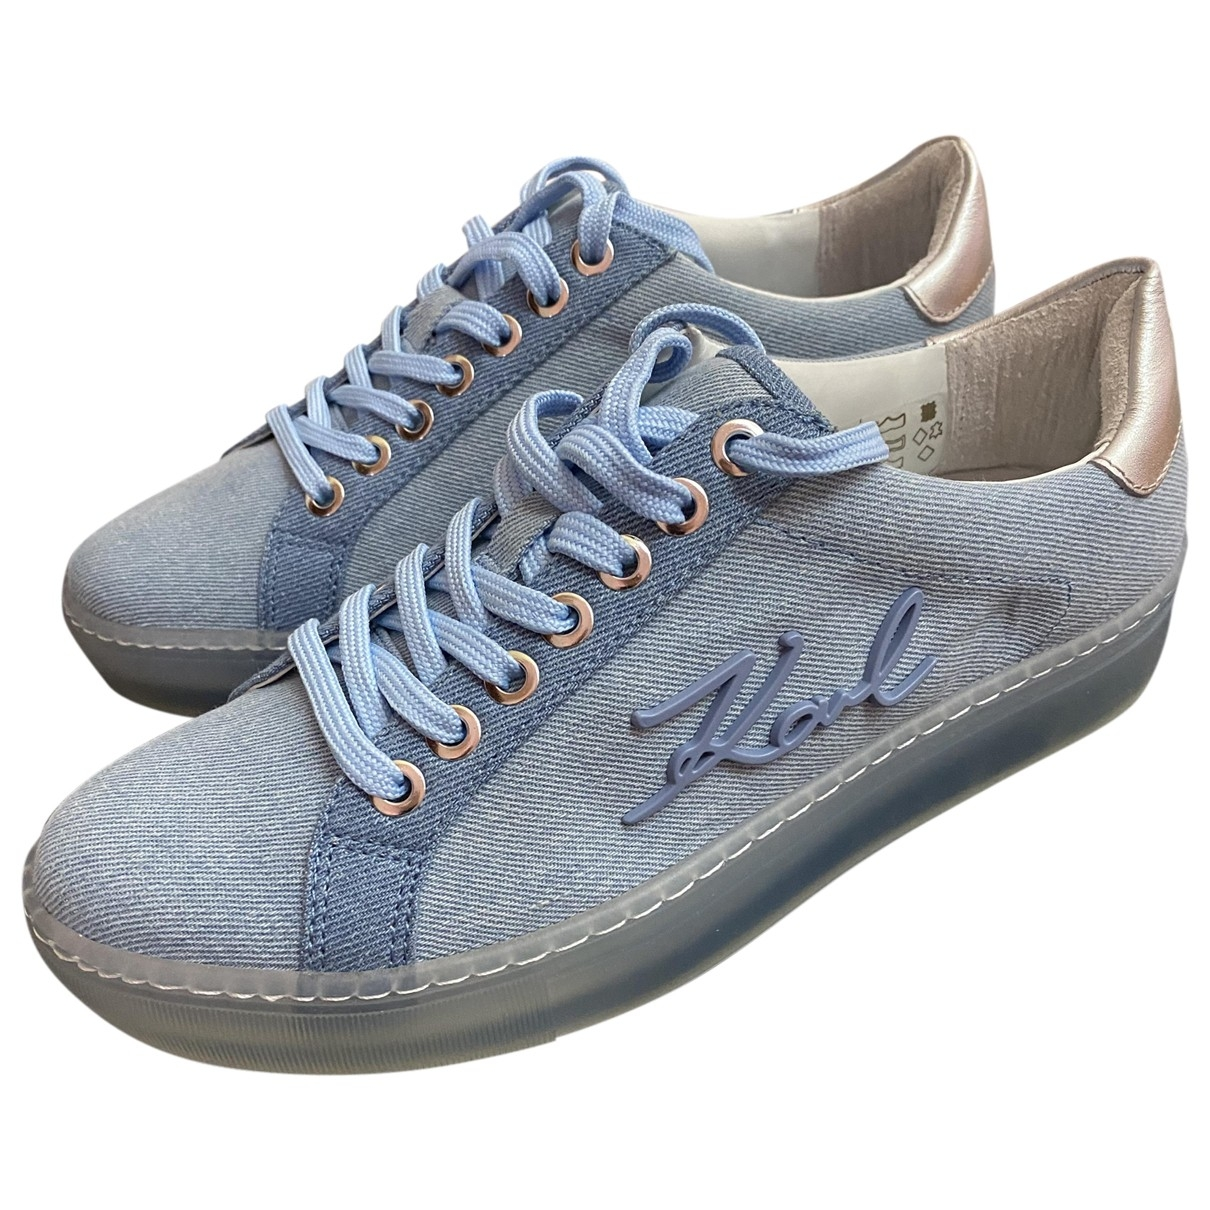 Karl \N Sneakers in  Blau Leder